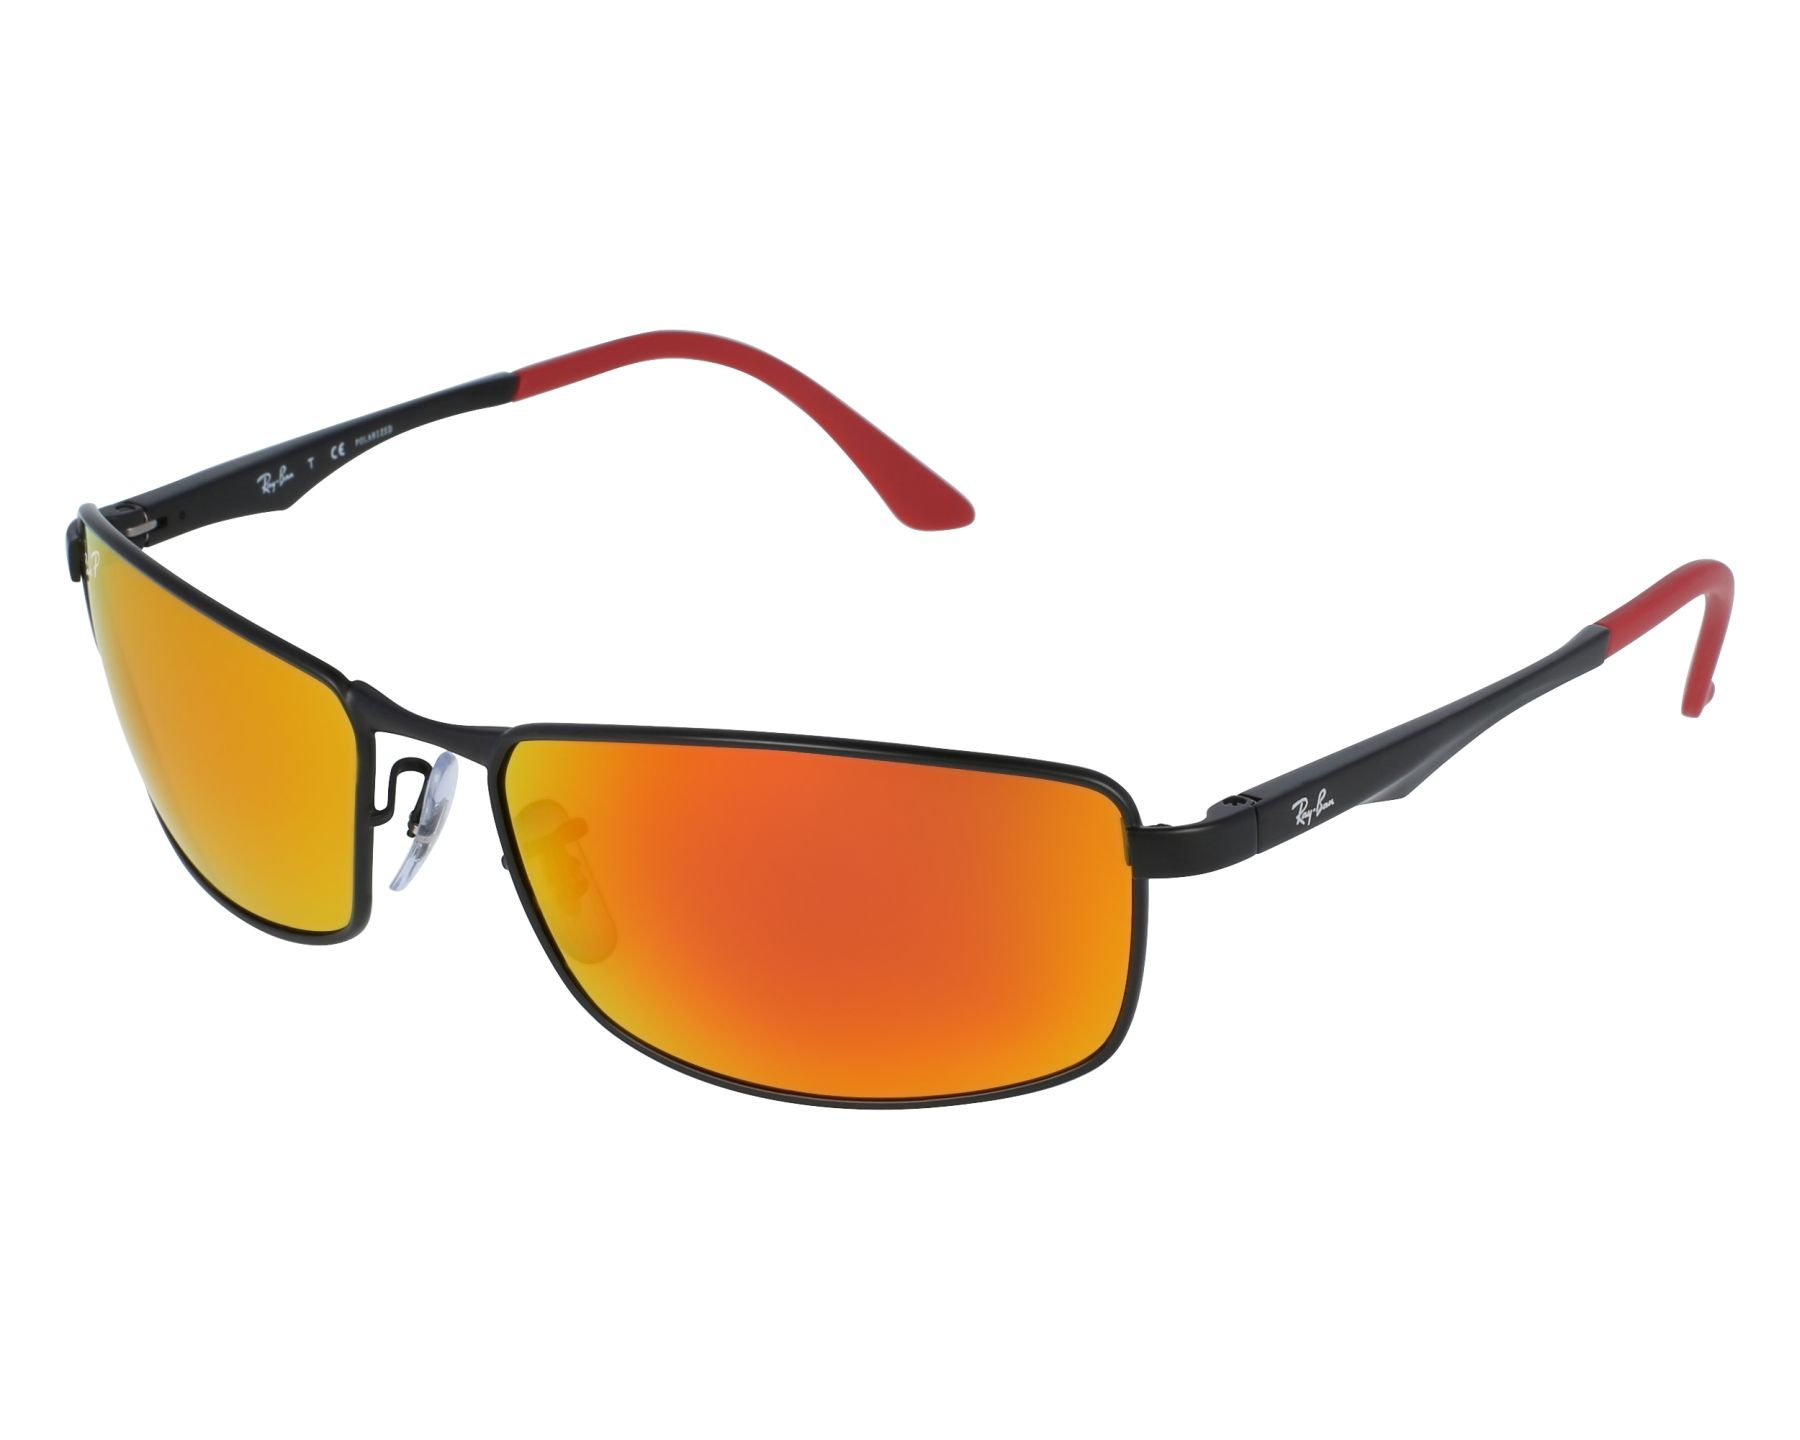 62577753d2 thumbnail Sunglasses Ray-Ban RB-3498 006 6S - Black front view